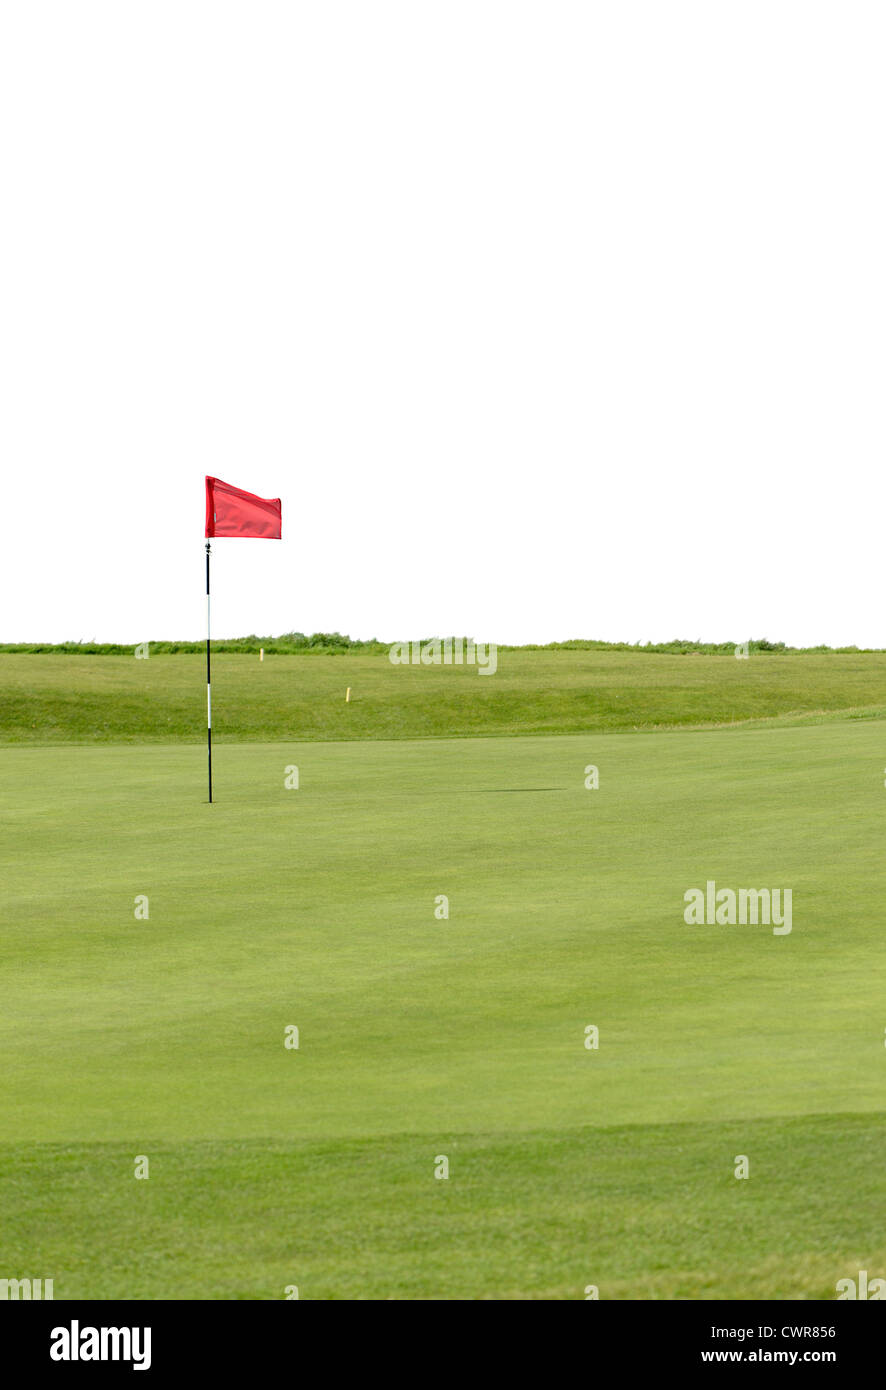 golf green on a links course - Stock Image